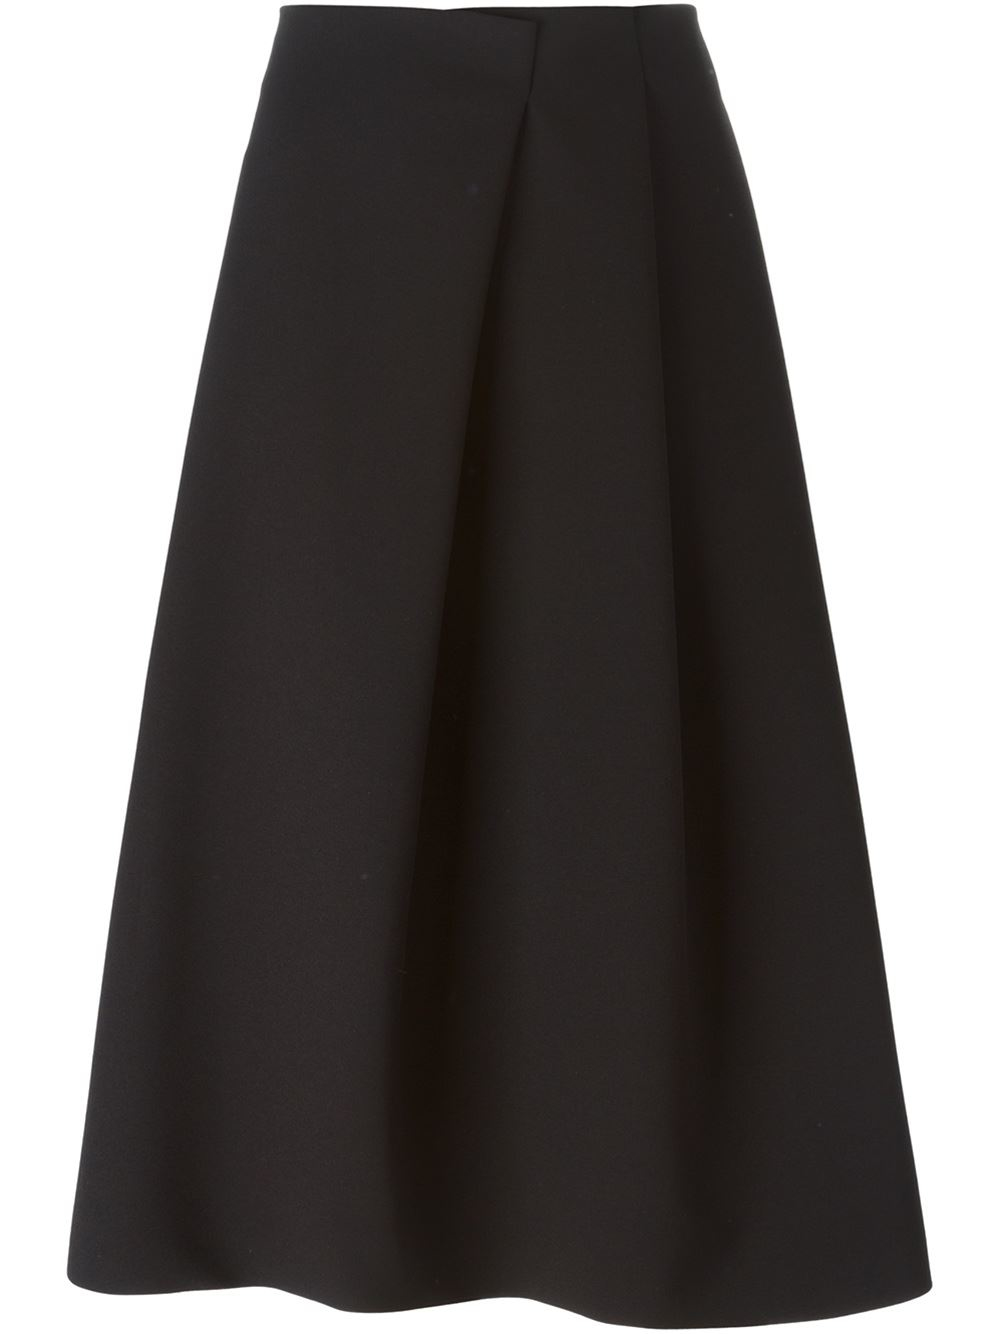 Jil sander A-line Midi Skirt in Black | Lyst